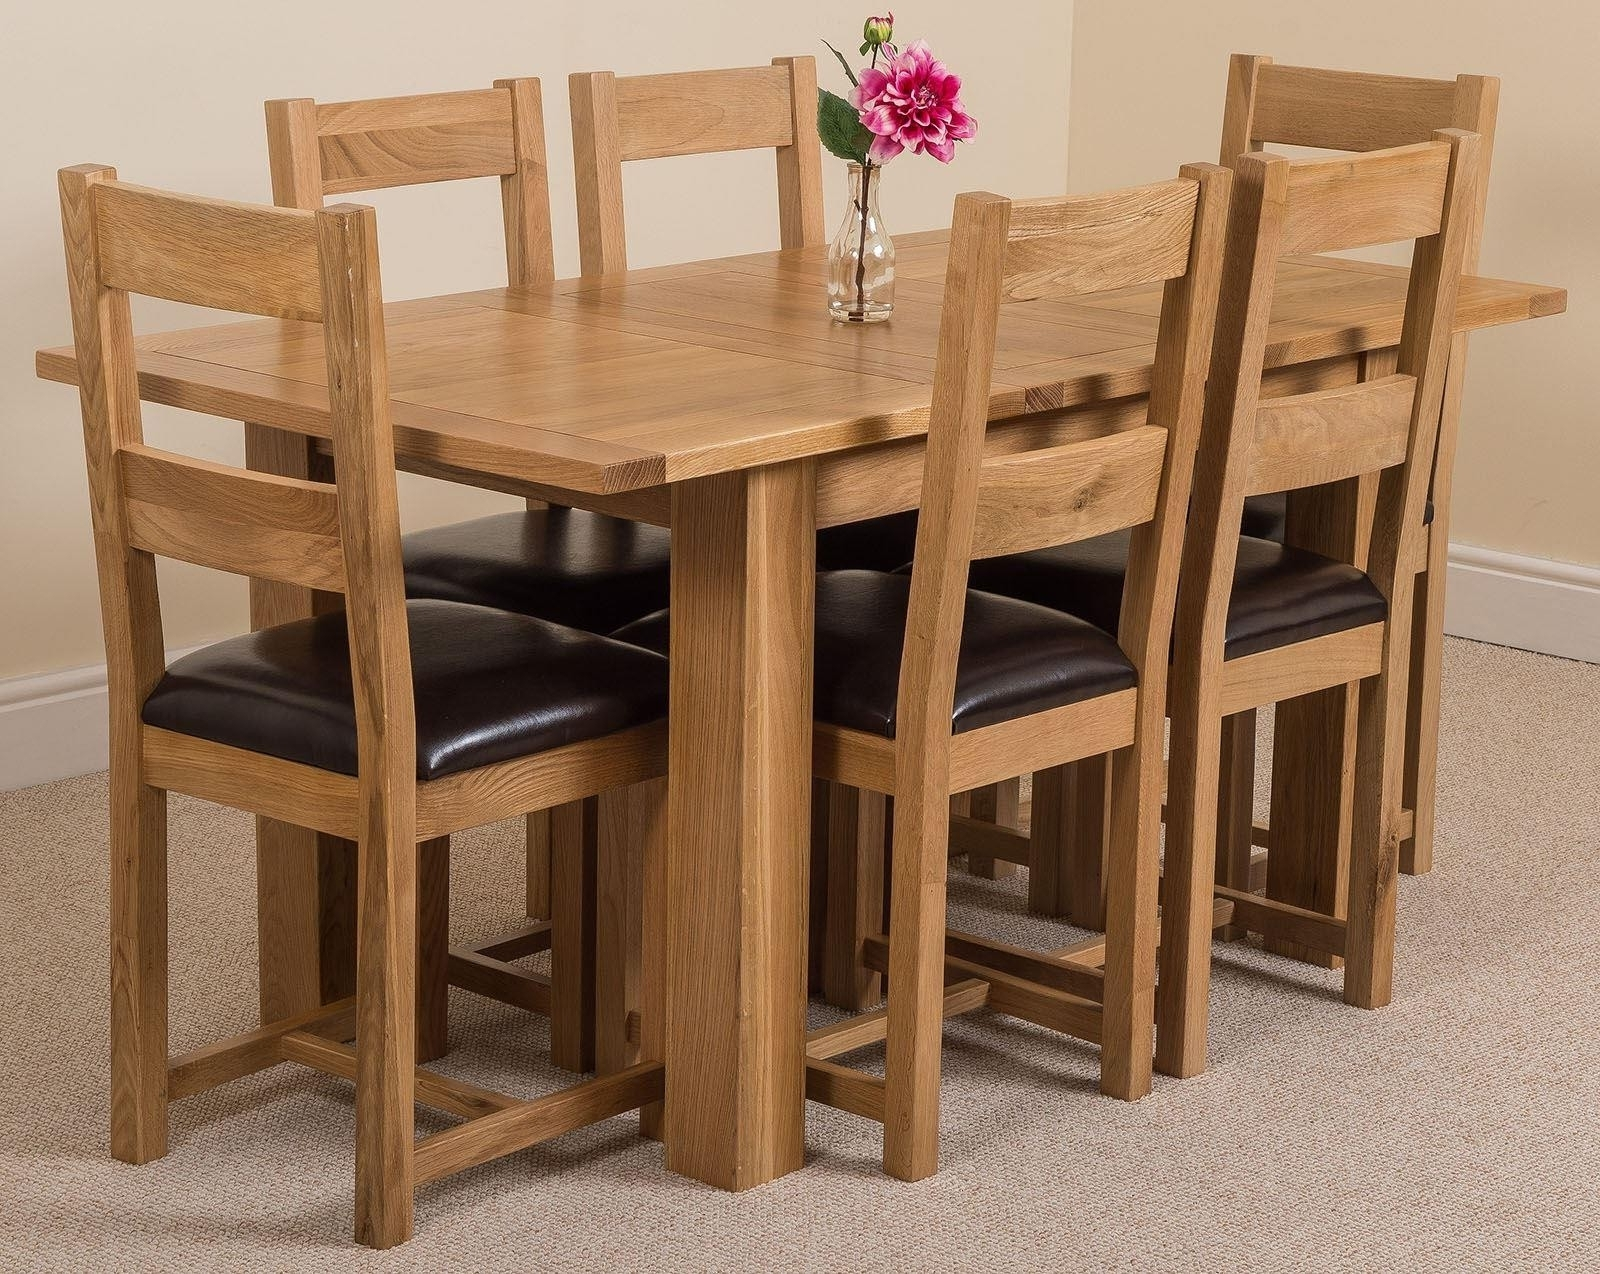 Oak Furniture King Pertaining To Oak Dining Set 6 Chairs (View 18 of 25)